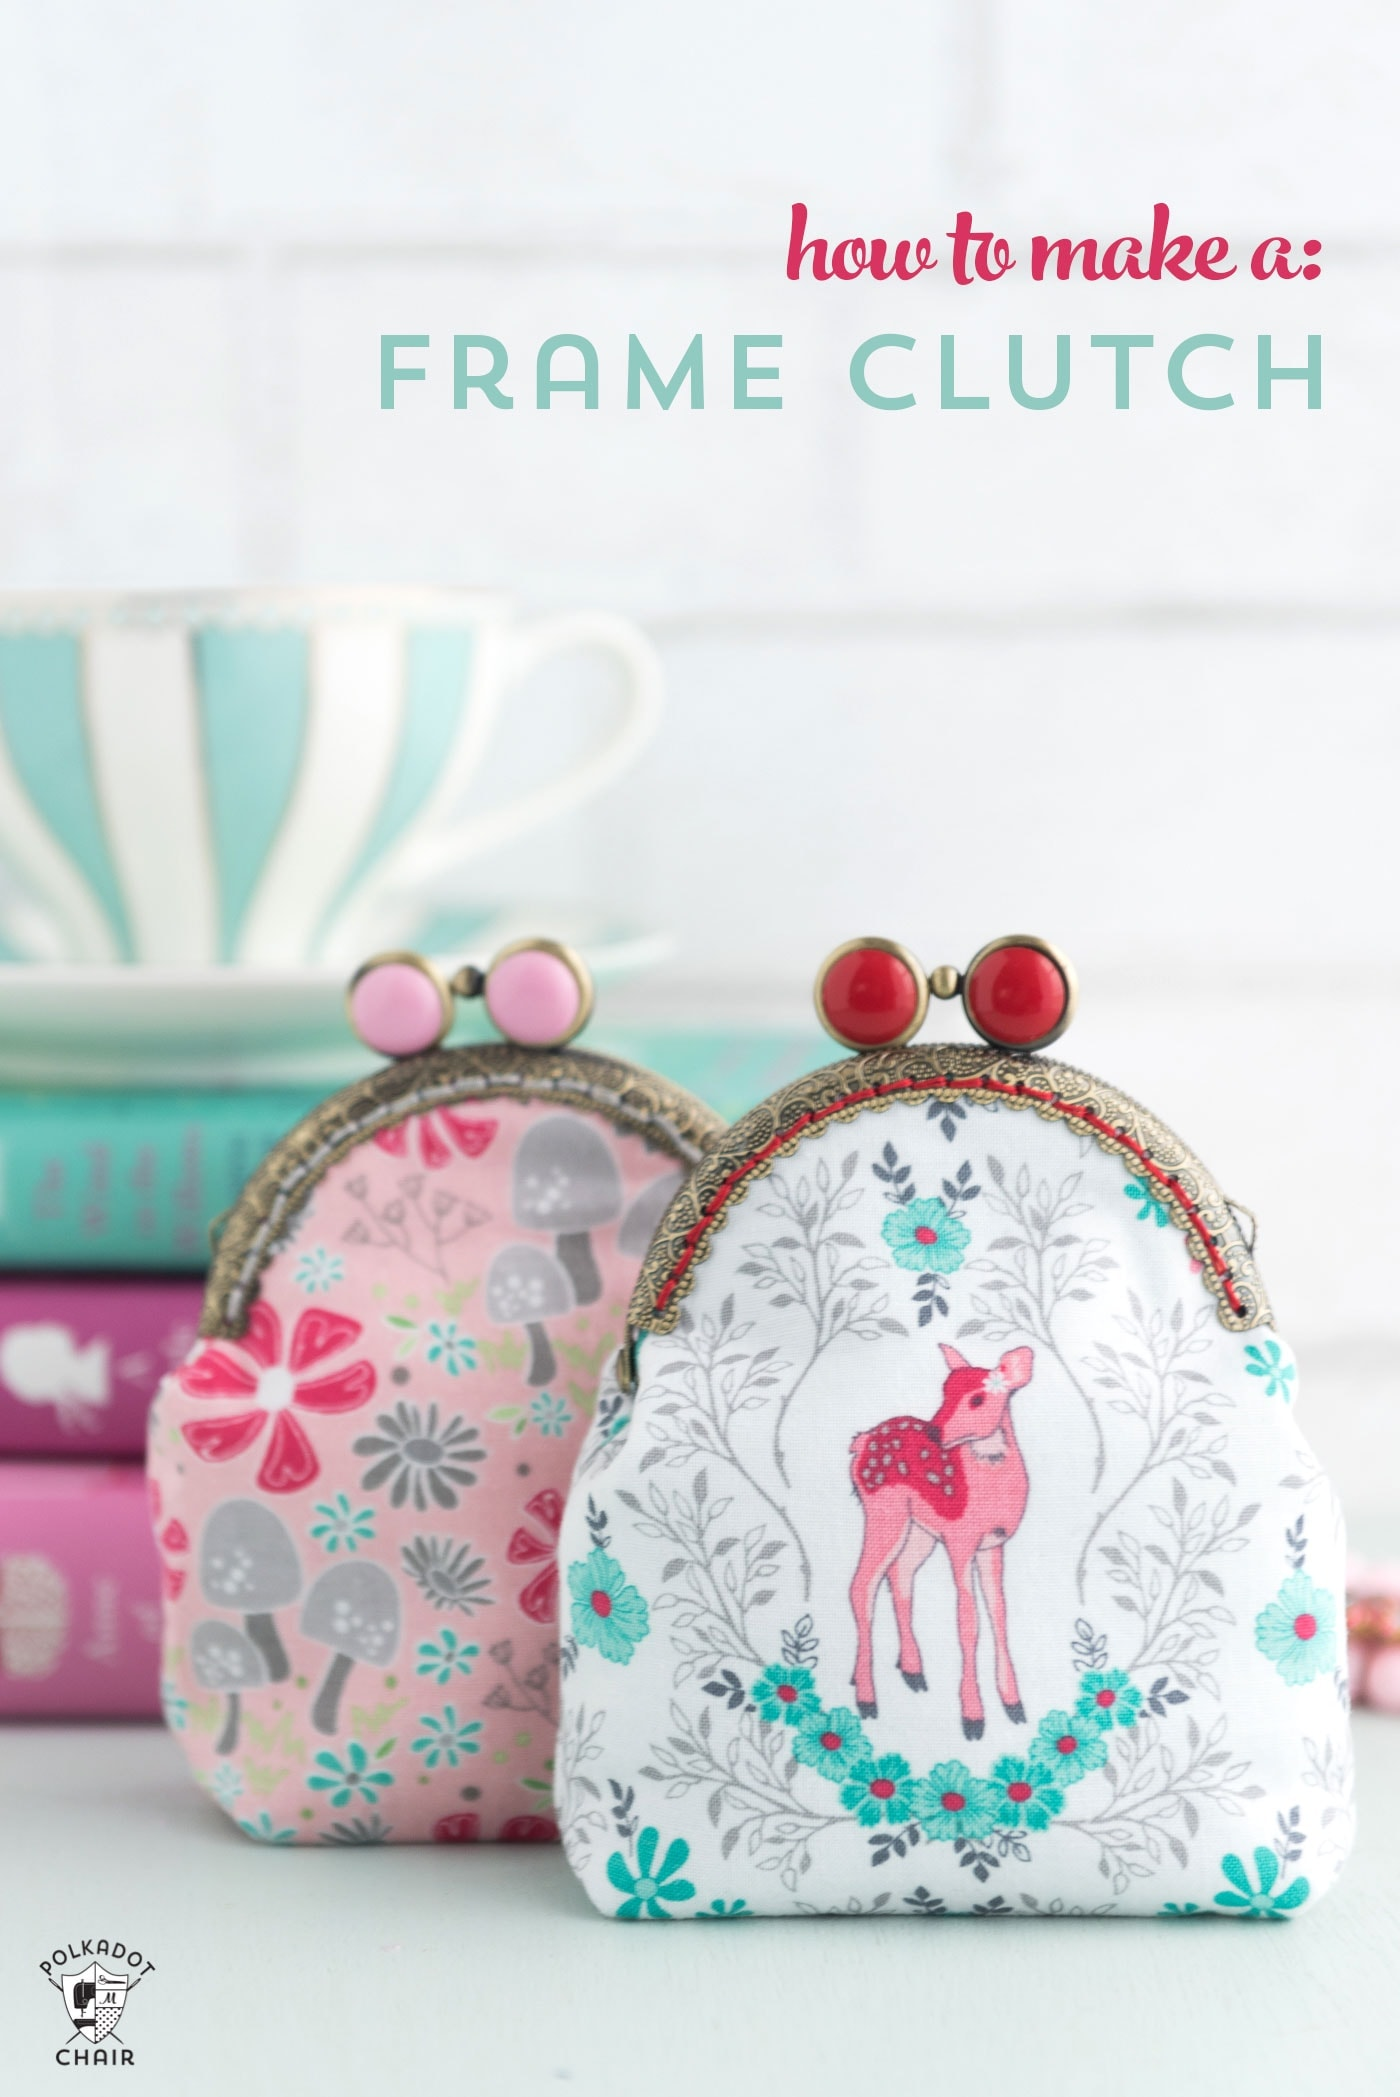 Learn how to draft a custom pattern for a frame clutch with this metal frame purse tutorial - how make a coin purse from a metal frame #frameclutch #sewing #sewingtutorial #sewingpattern #melissamortenson #polkadotchair #frameclutchpattern